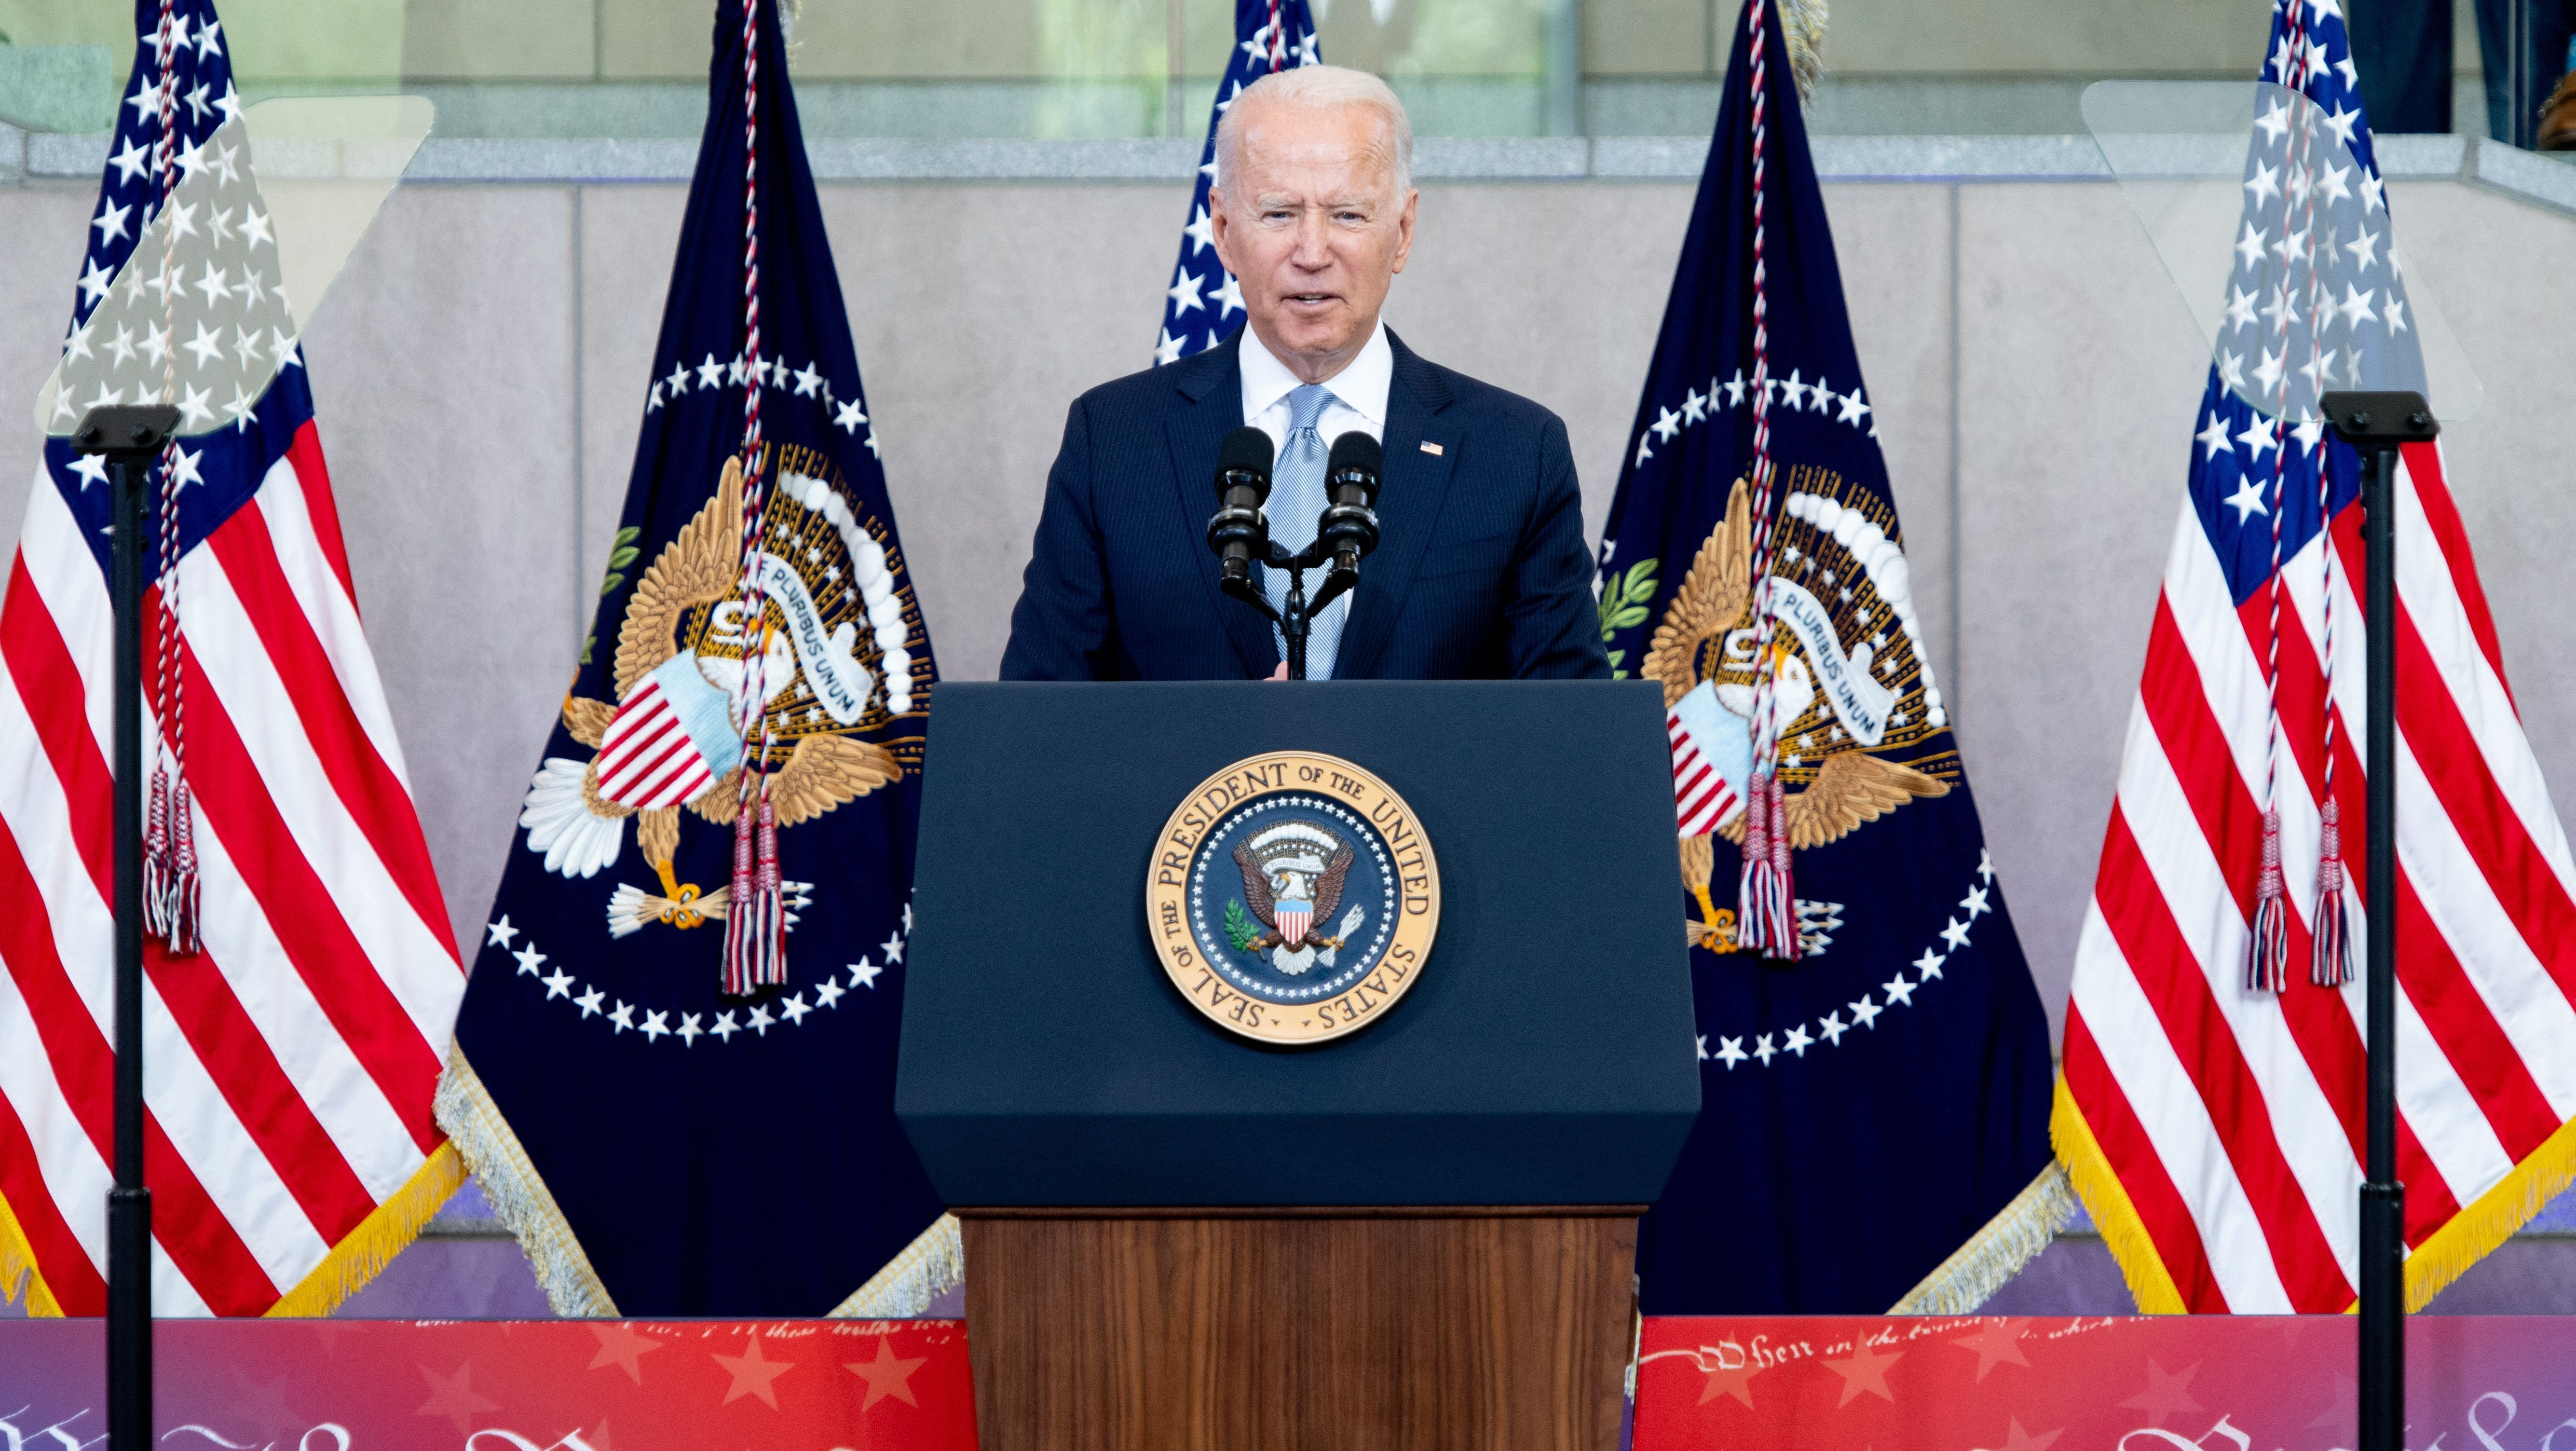 Voting rights activists: Biden's actions fall short of dire warnings